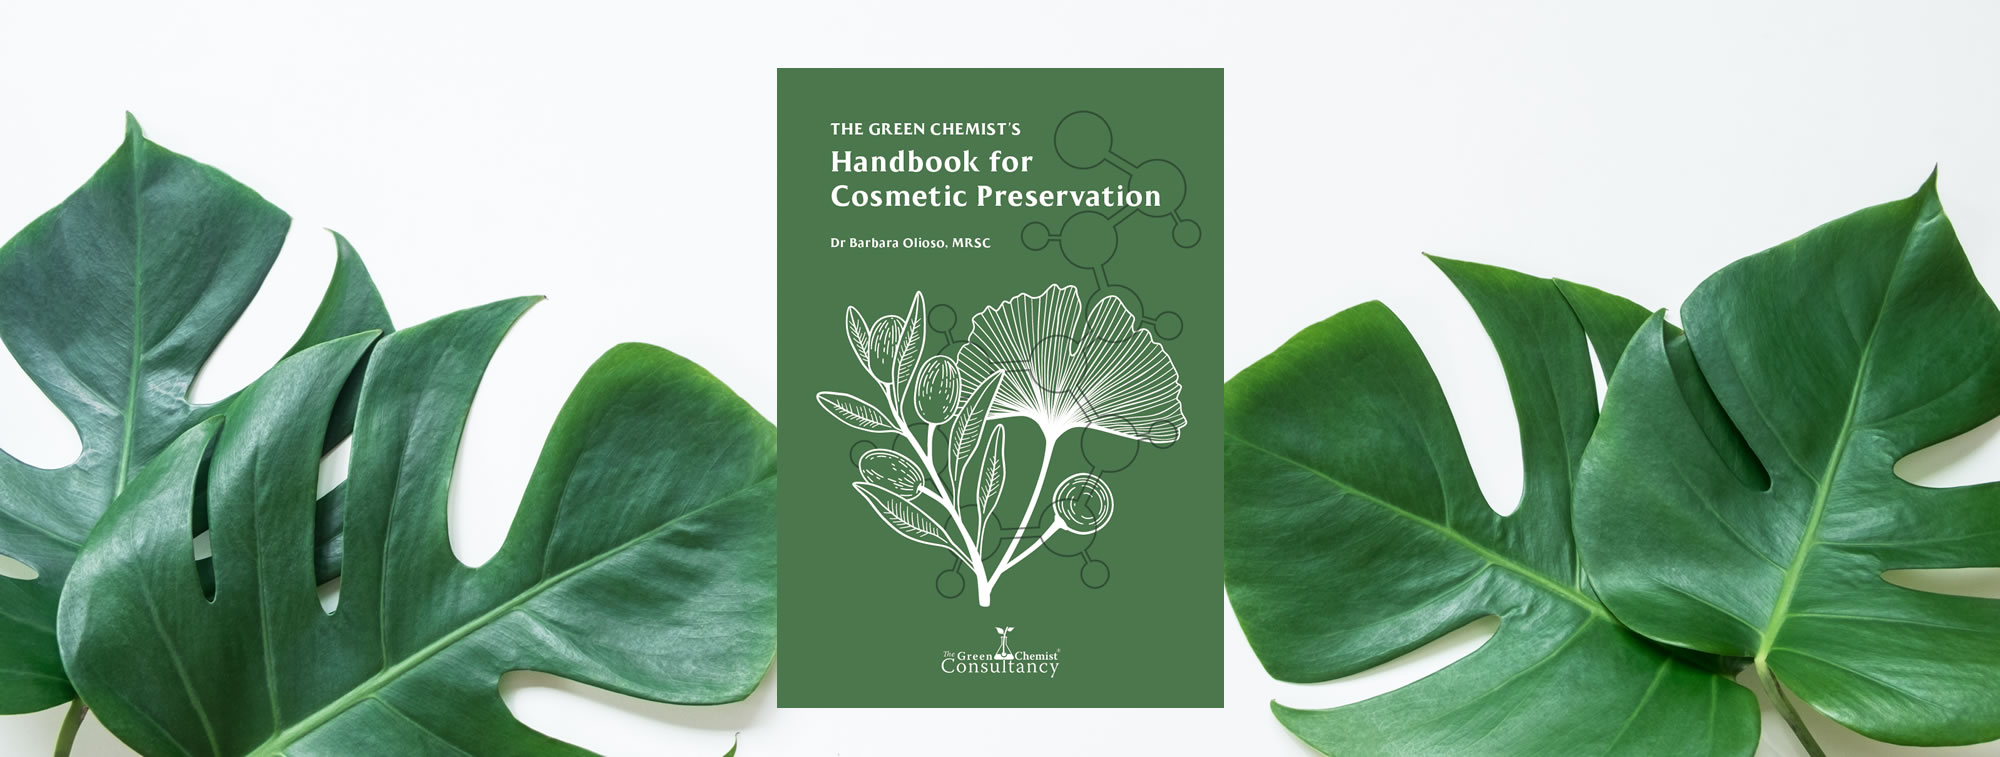 The Green Chemist's Handbook for Cosmetic Preservation is here